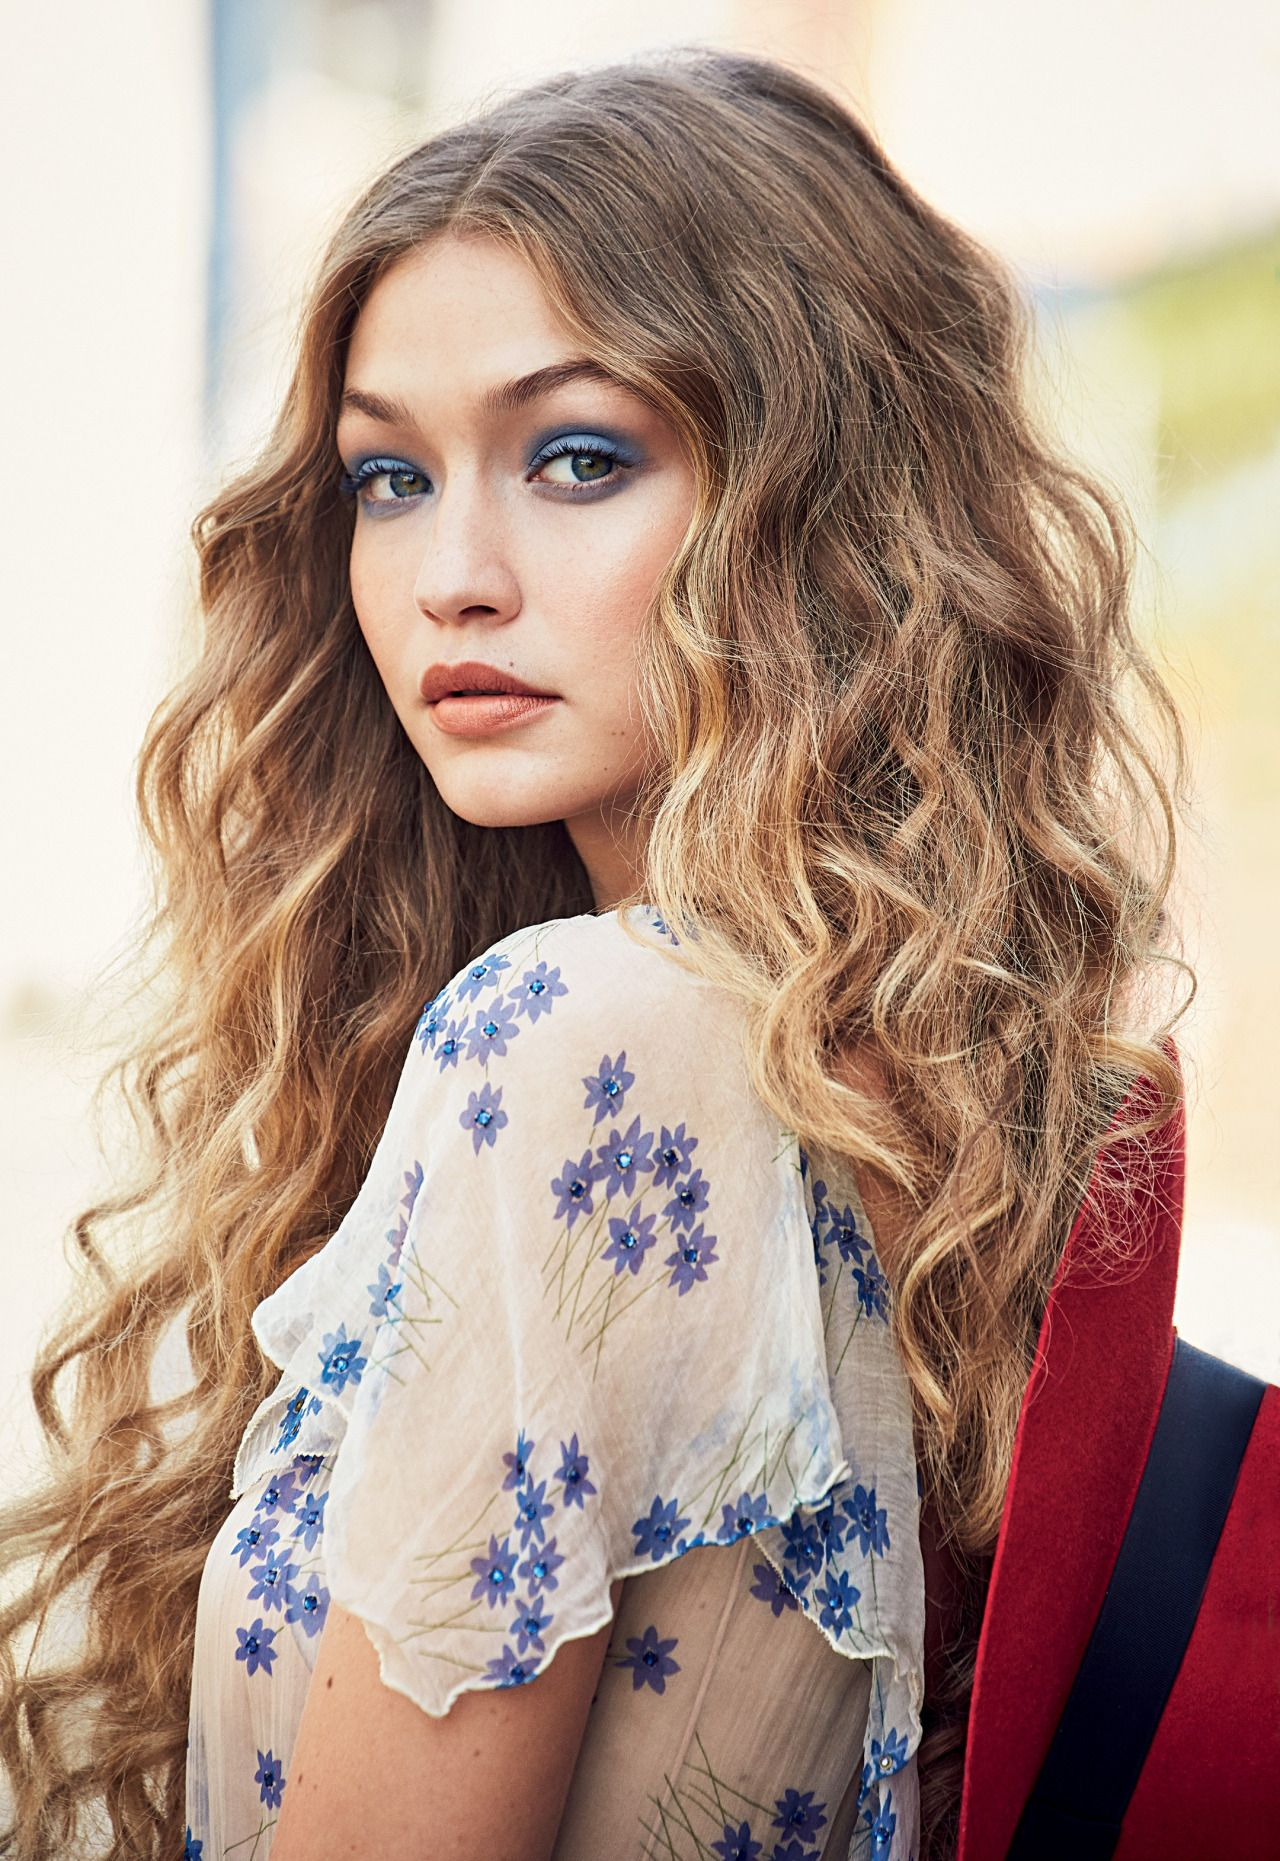 8e70037c7 gigihadidaily  Gigi Hadid for Allure Magazine - Lace   Other Things ...